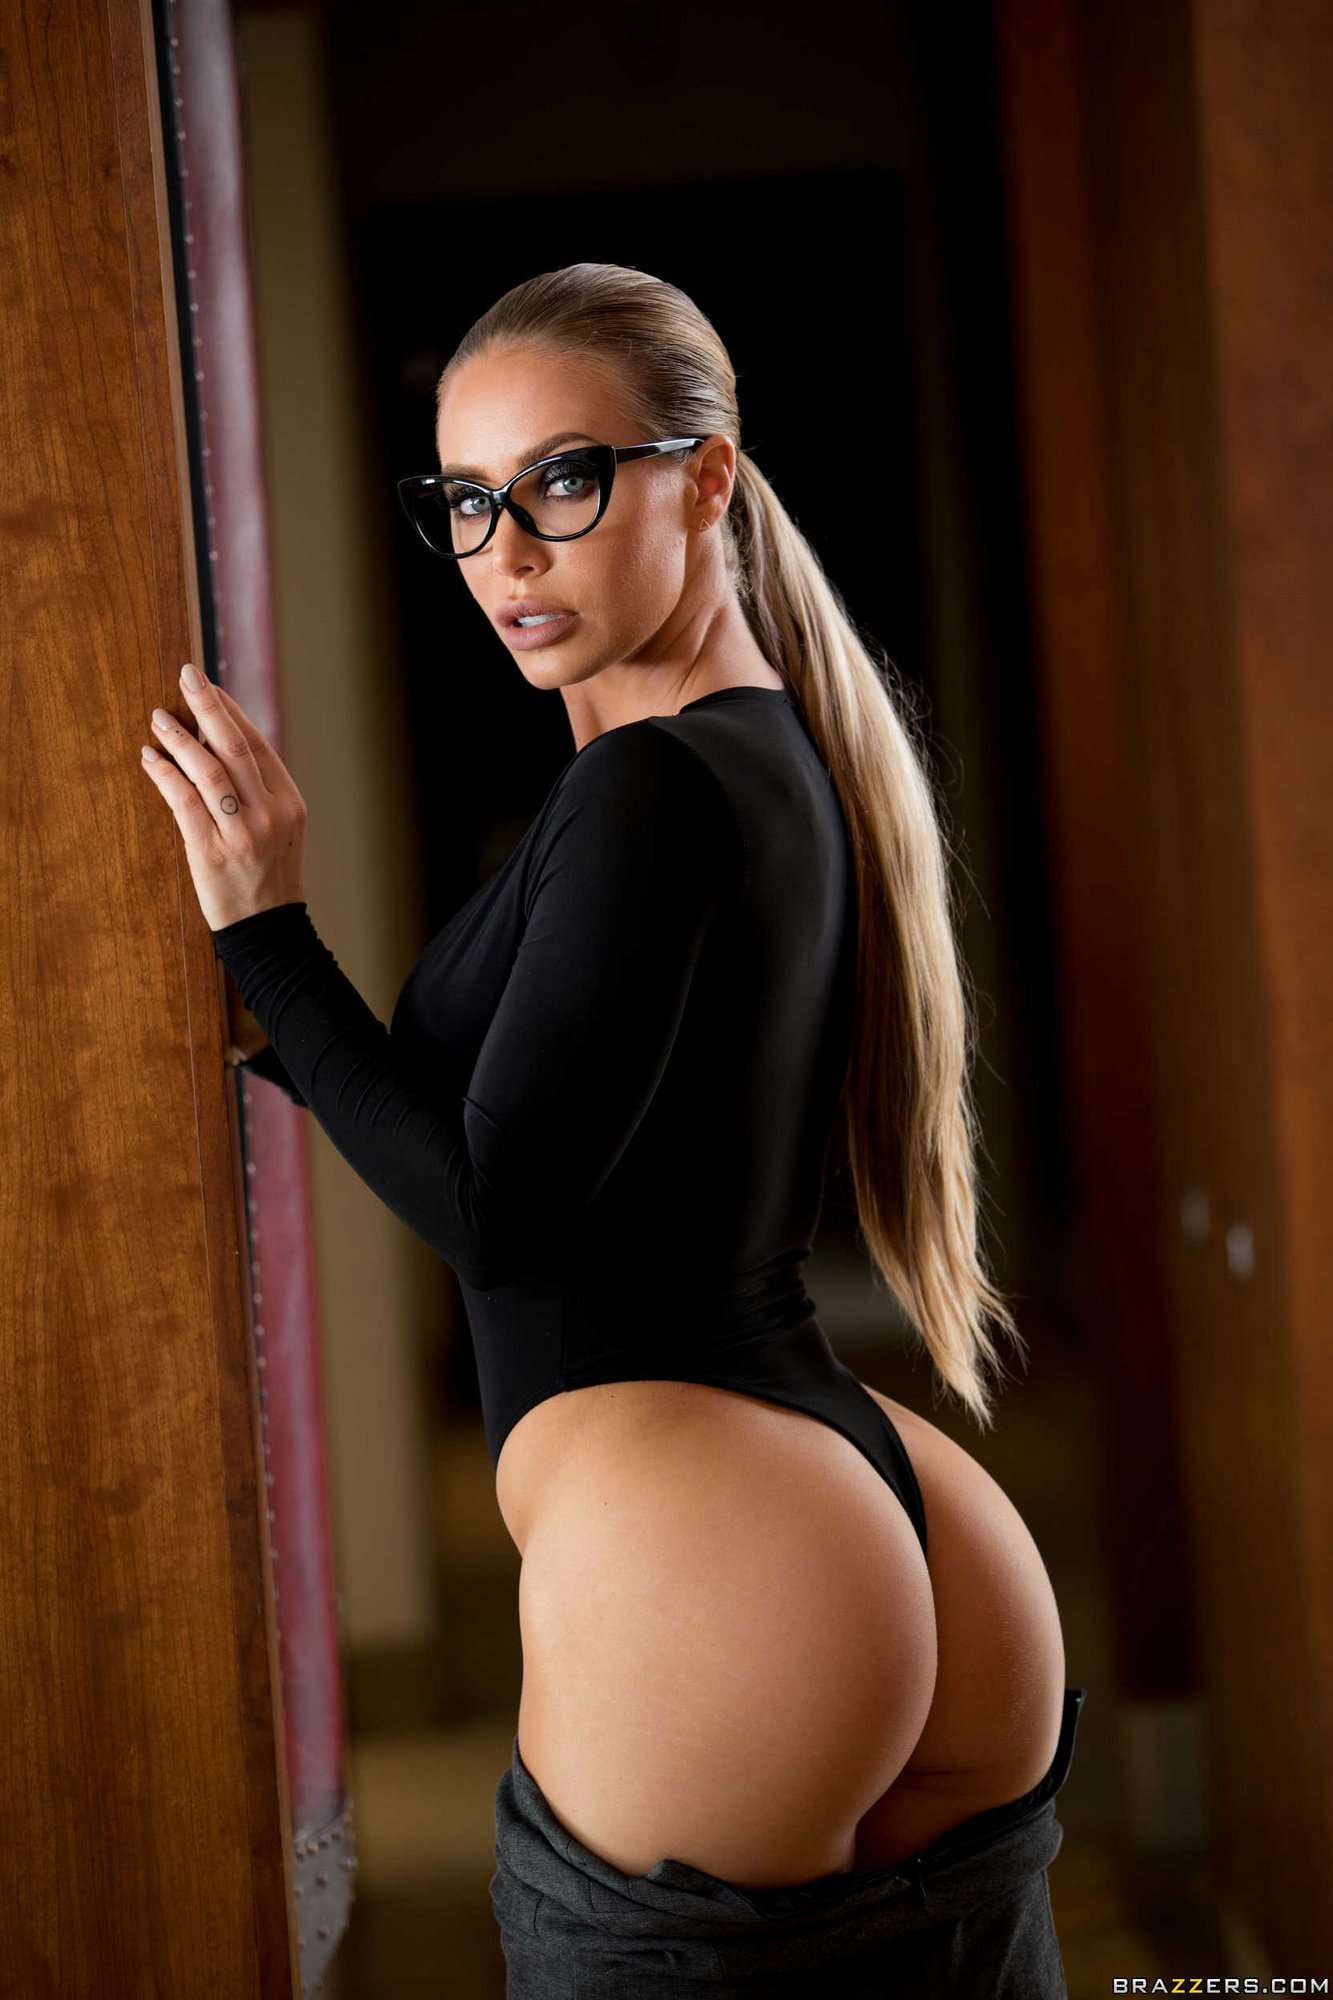 Nicole Aniston takes off her sexy outfit and underwear  My Pornstar Book